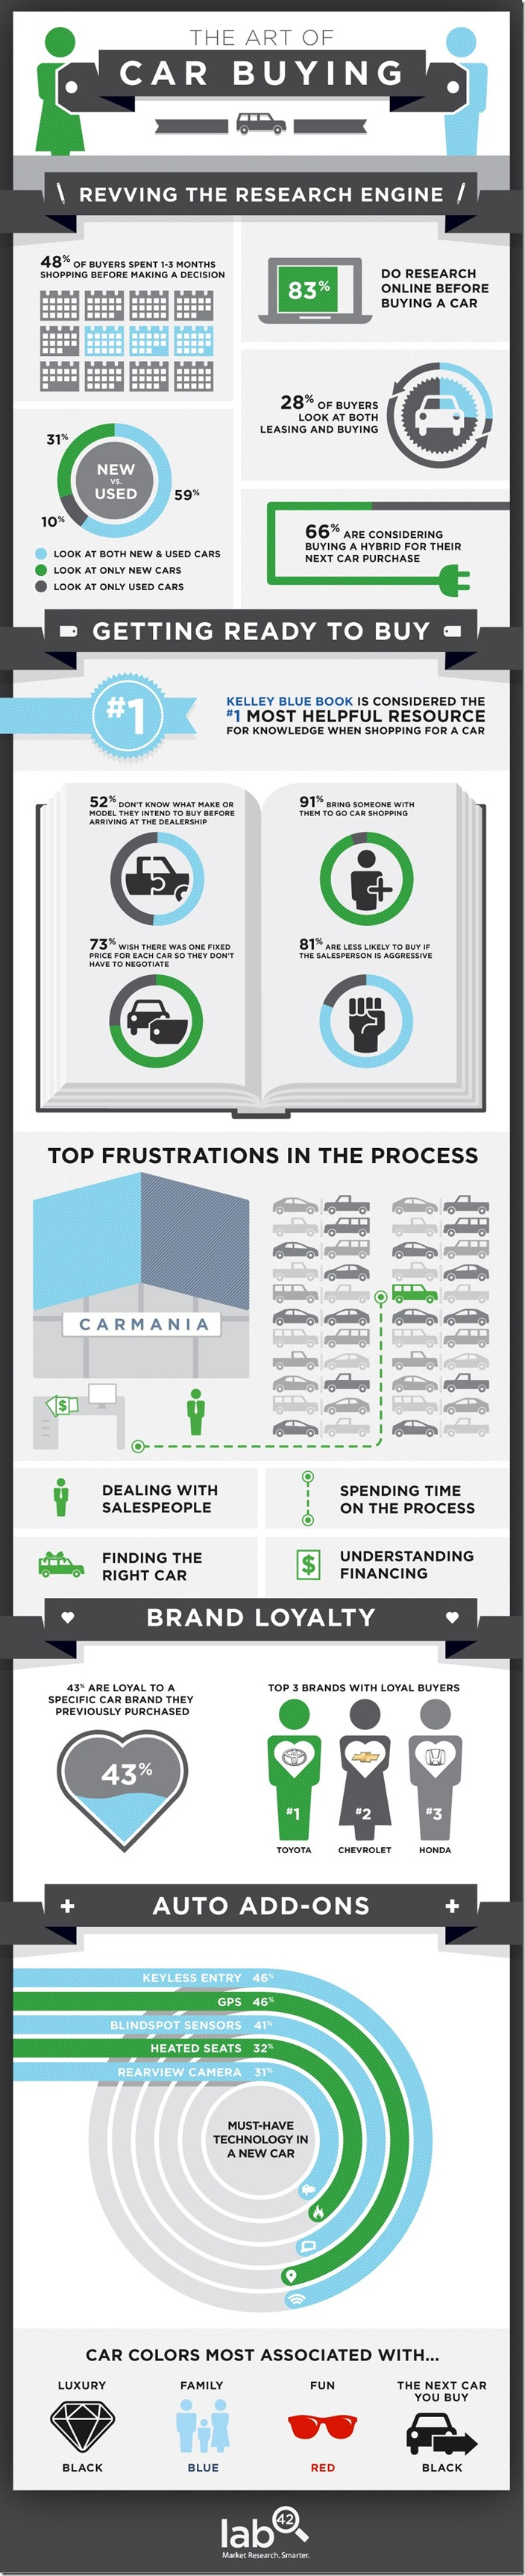 Lab42-Car-Buying-Infographic